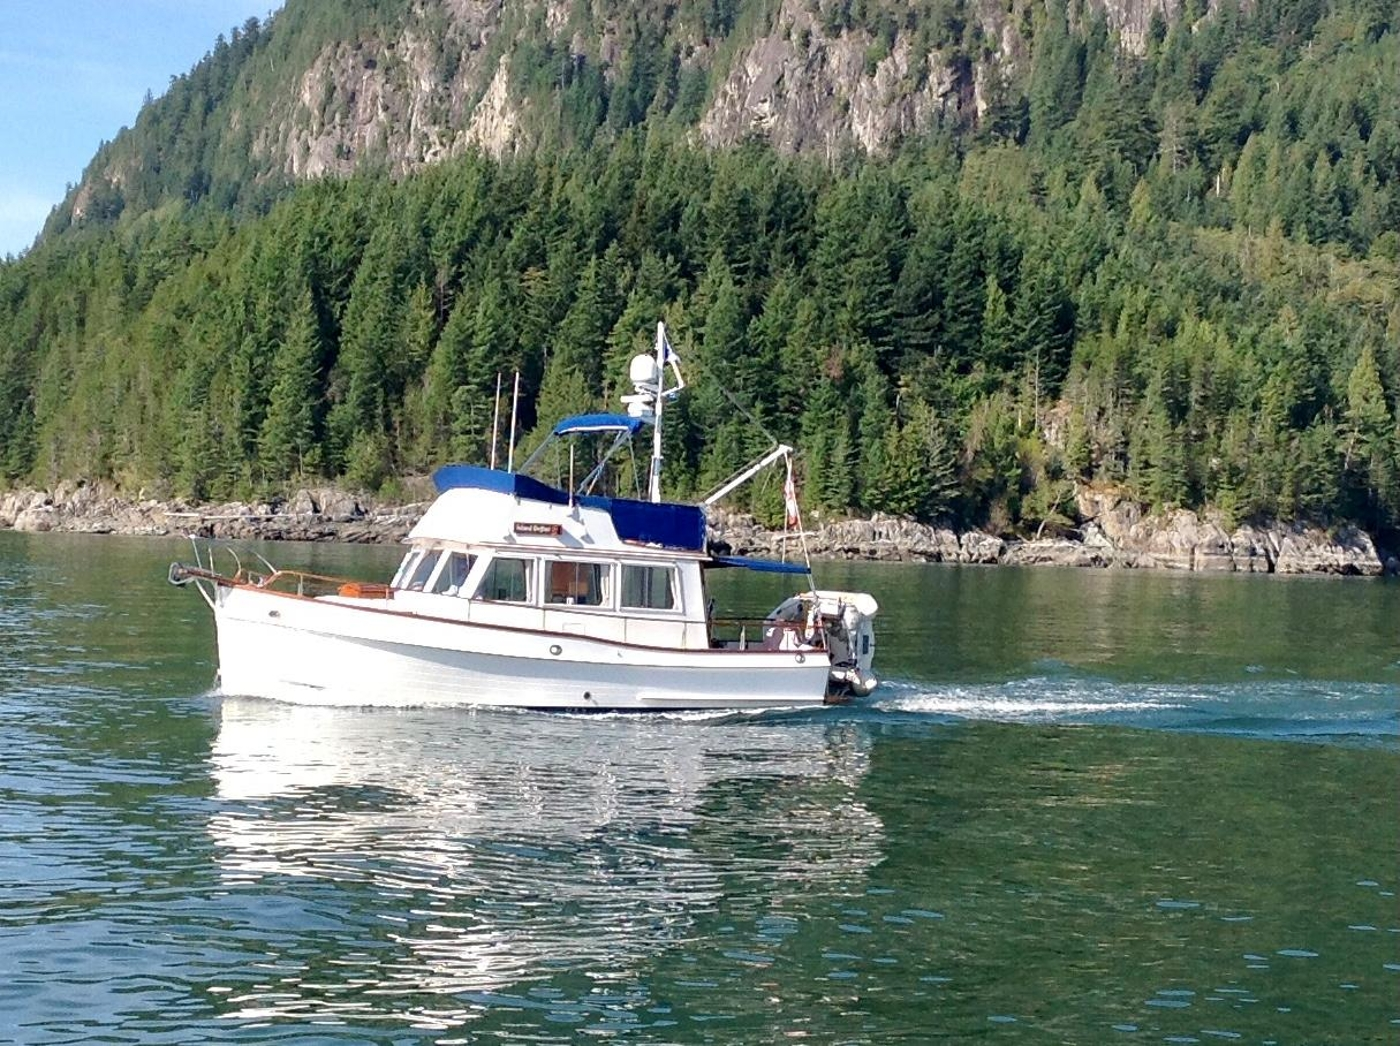 1988 Grand Banks 32, Underway to a new Adventure